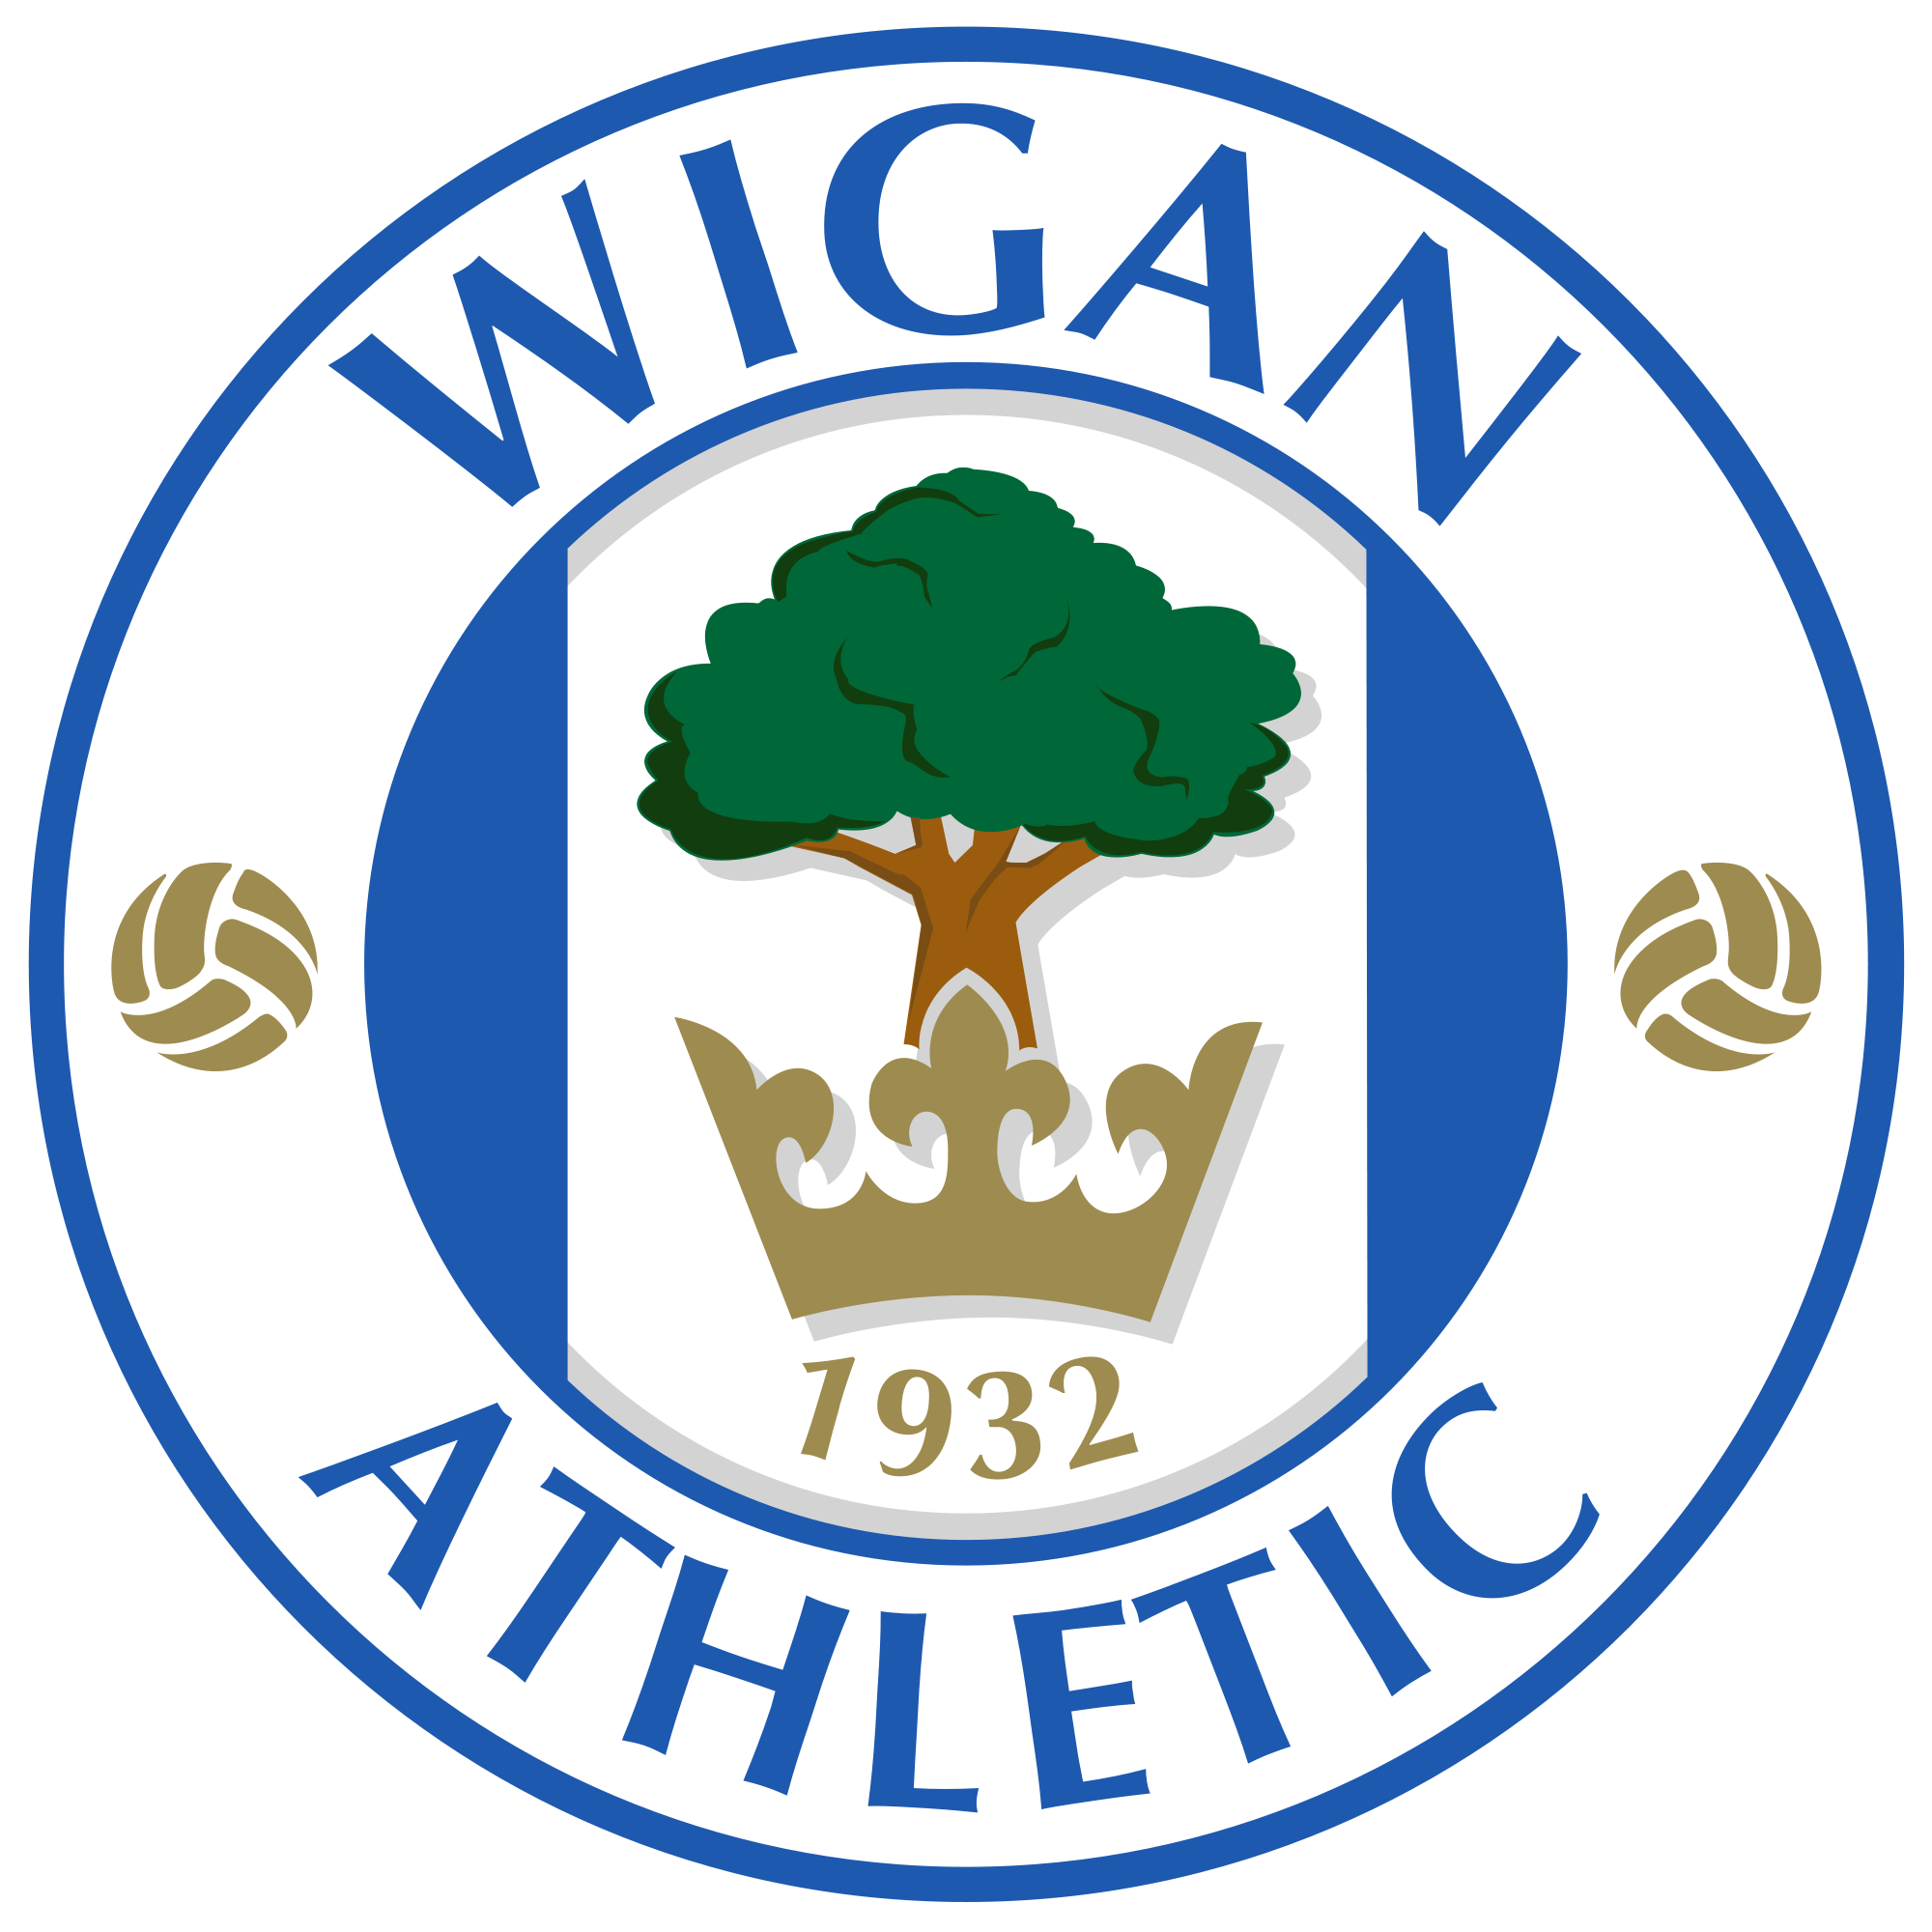 Meet the English Football Club: Wigan Athletic